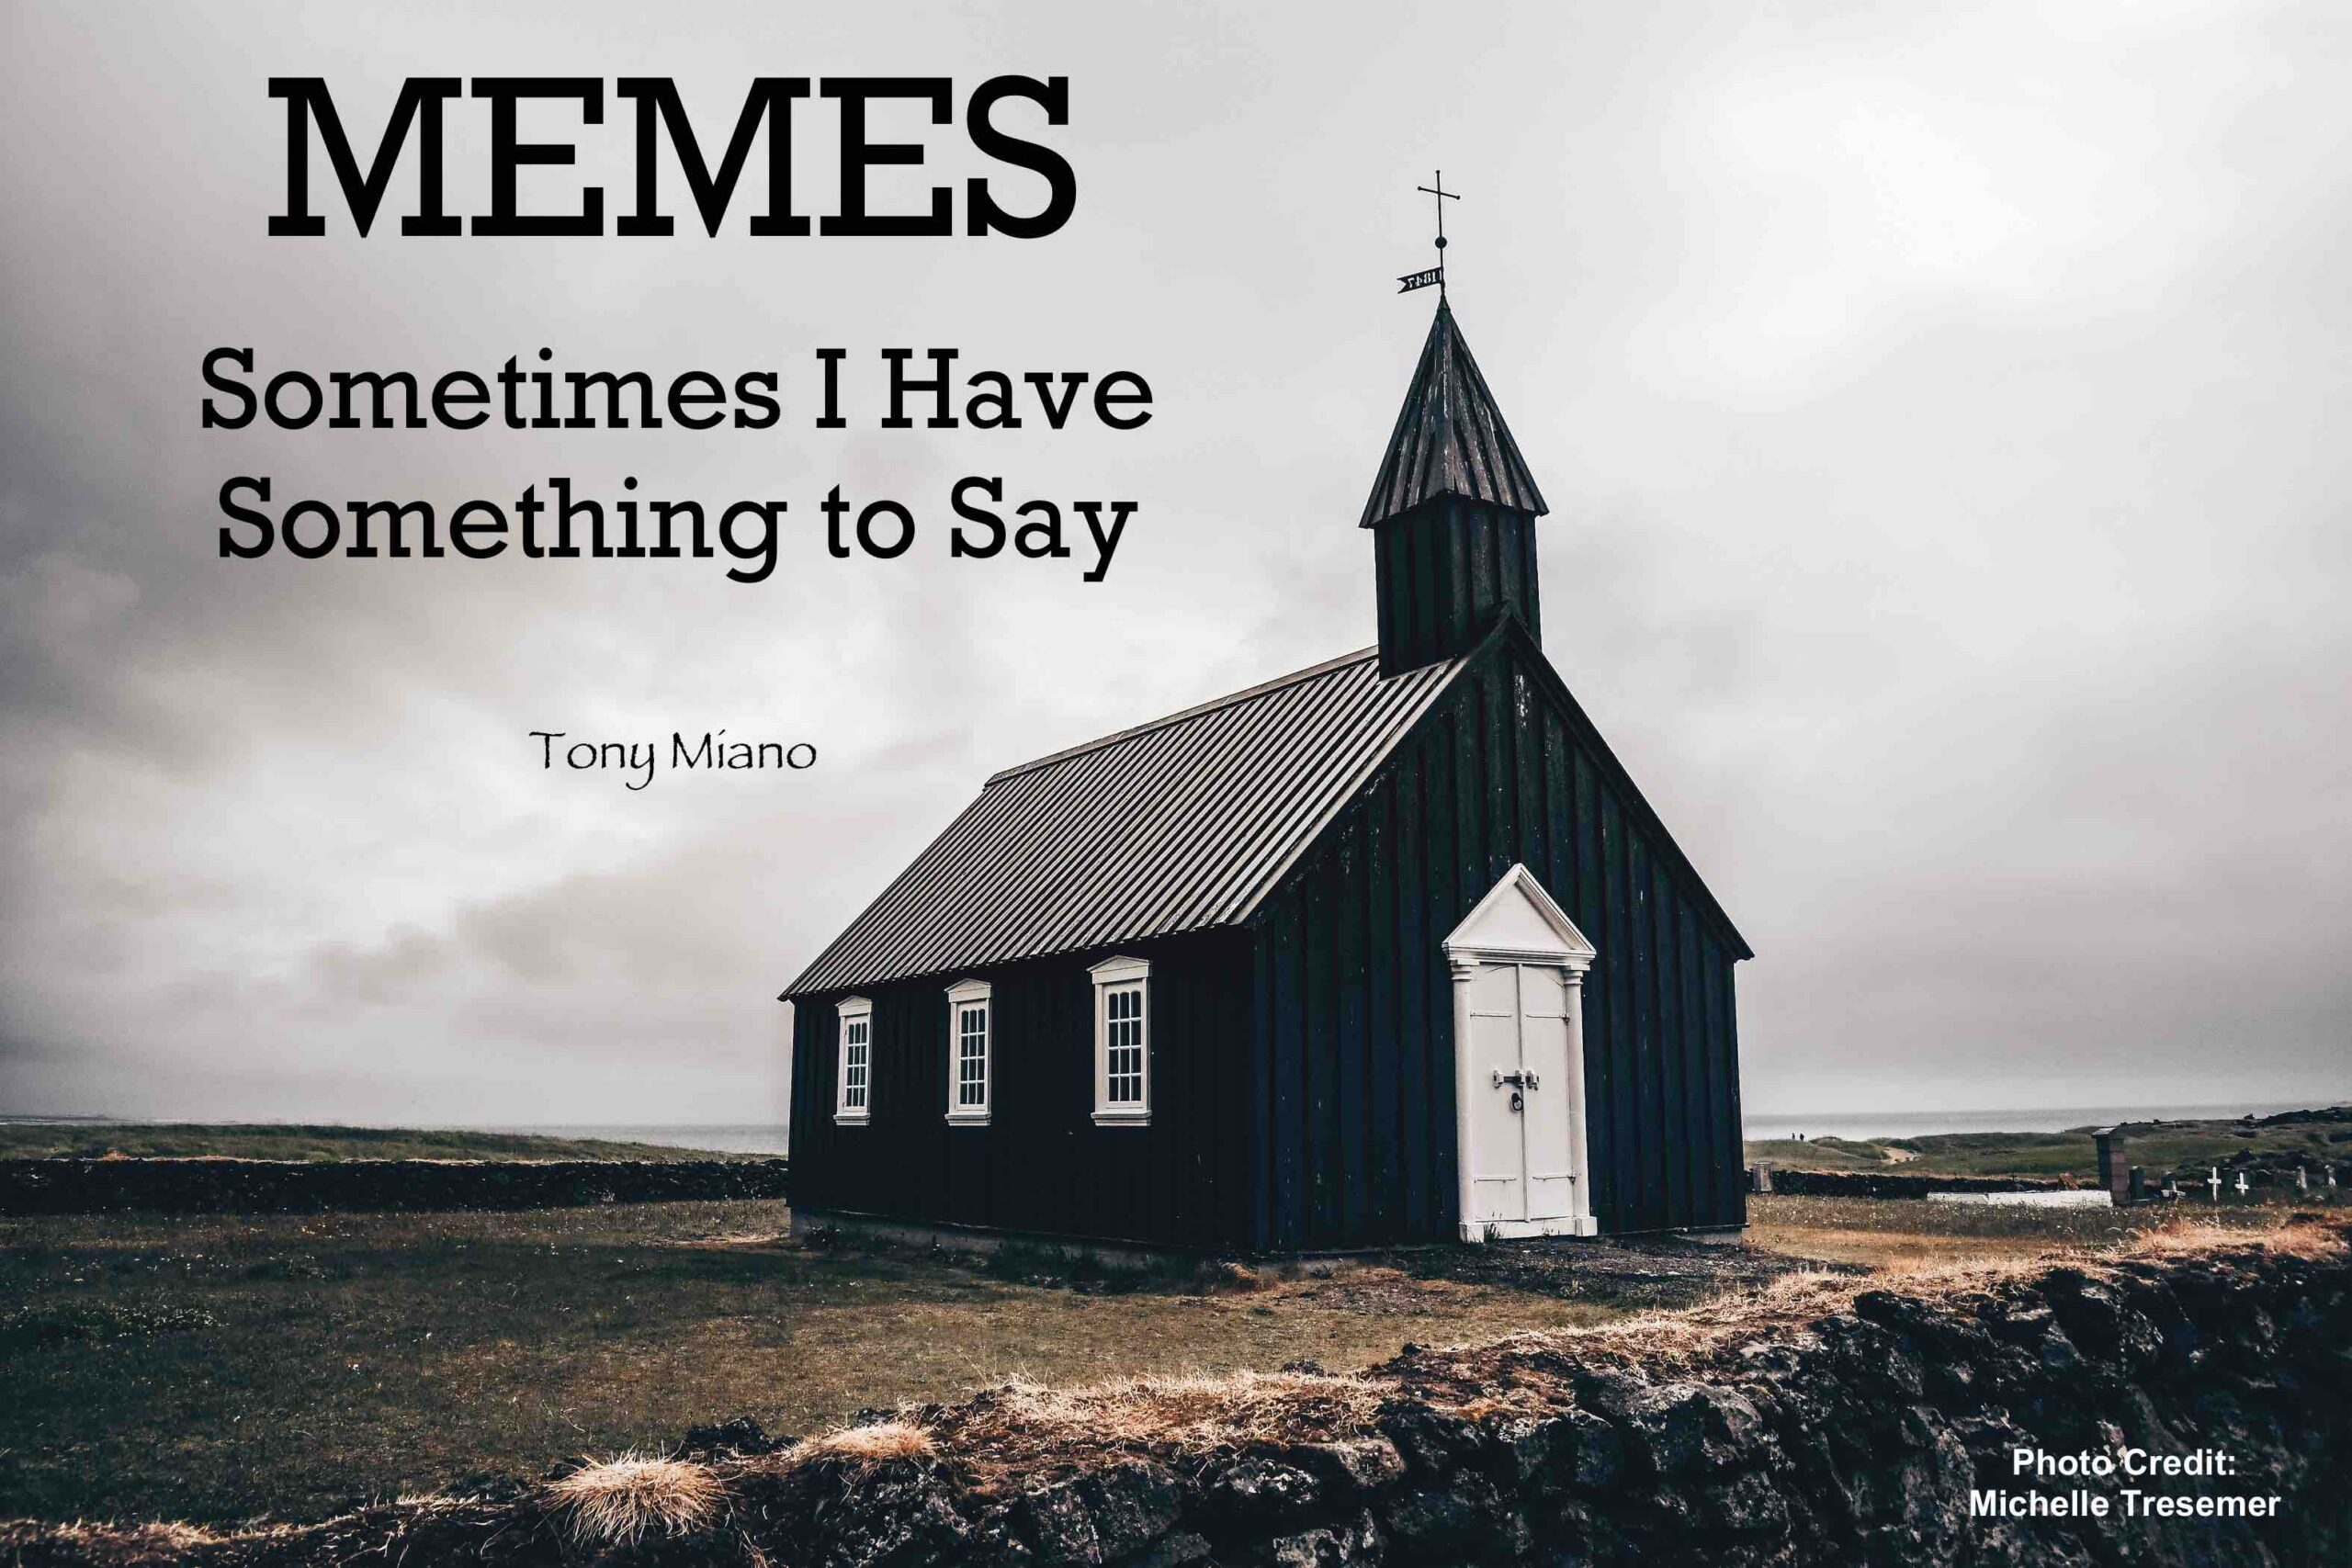 Memes: Sometimes I Have Something to Say